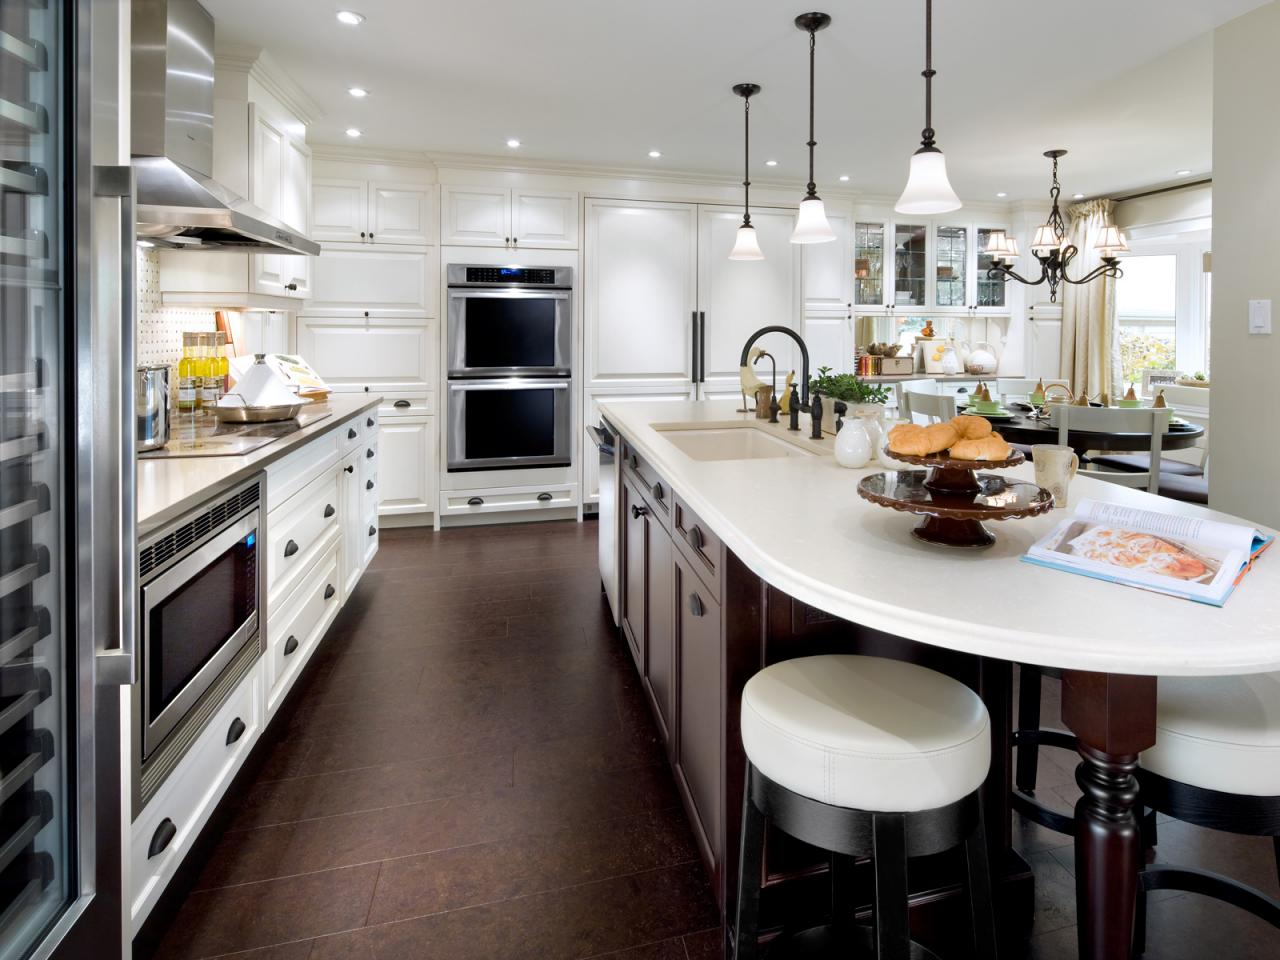 candice olson galley kitchen designs photo - 5